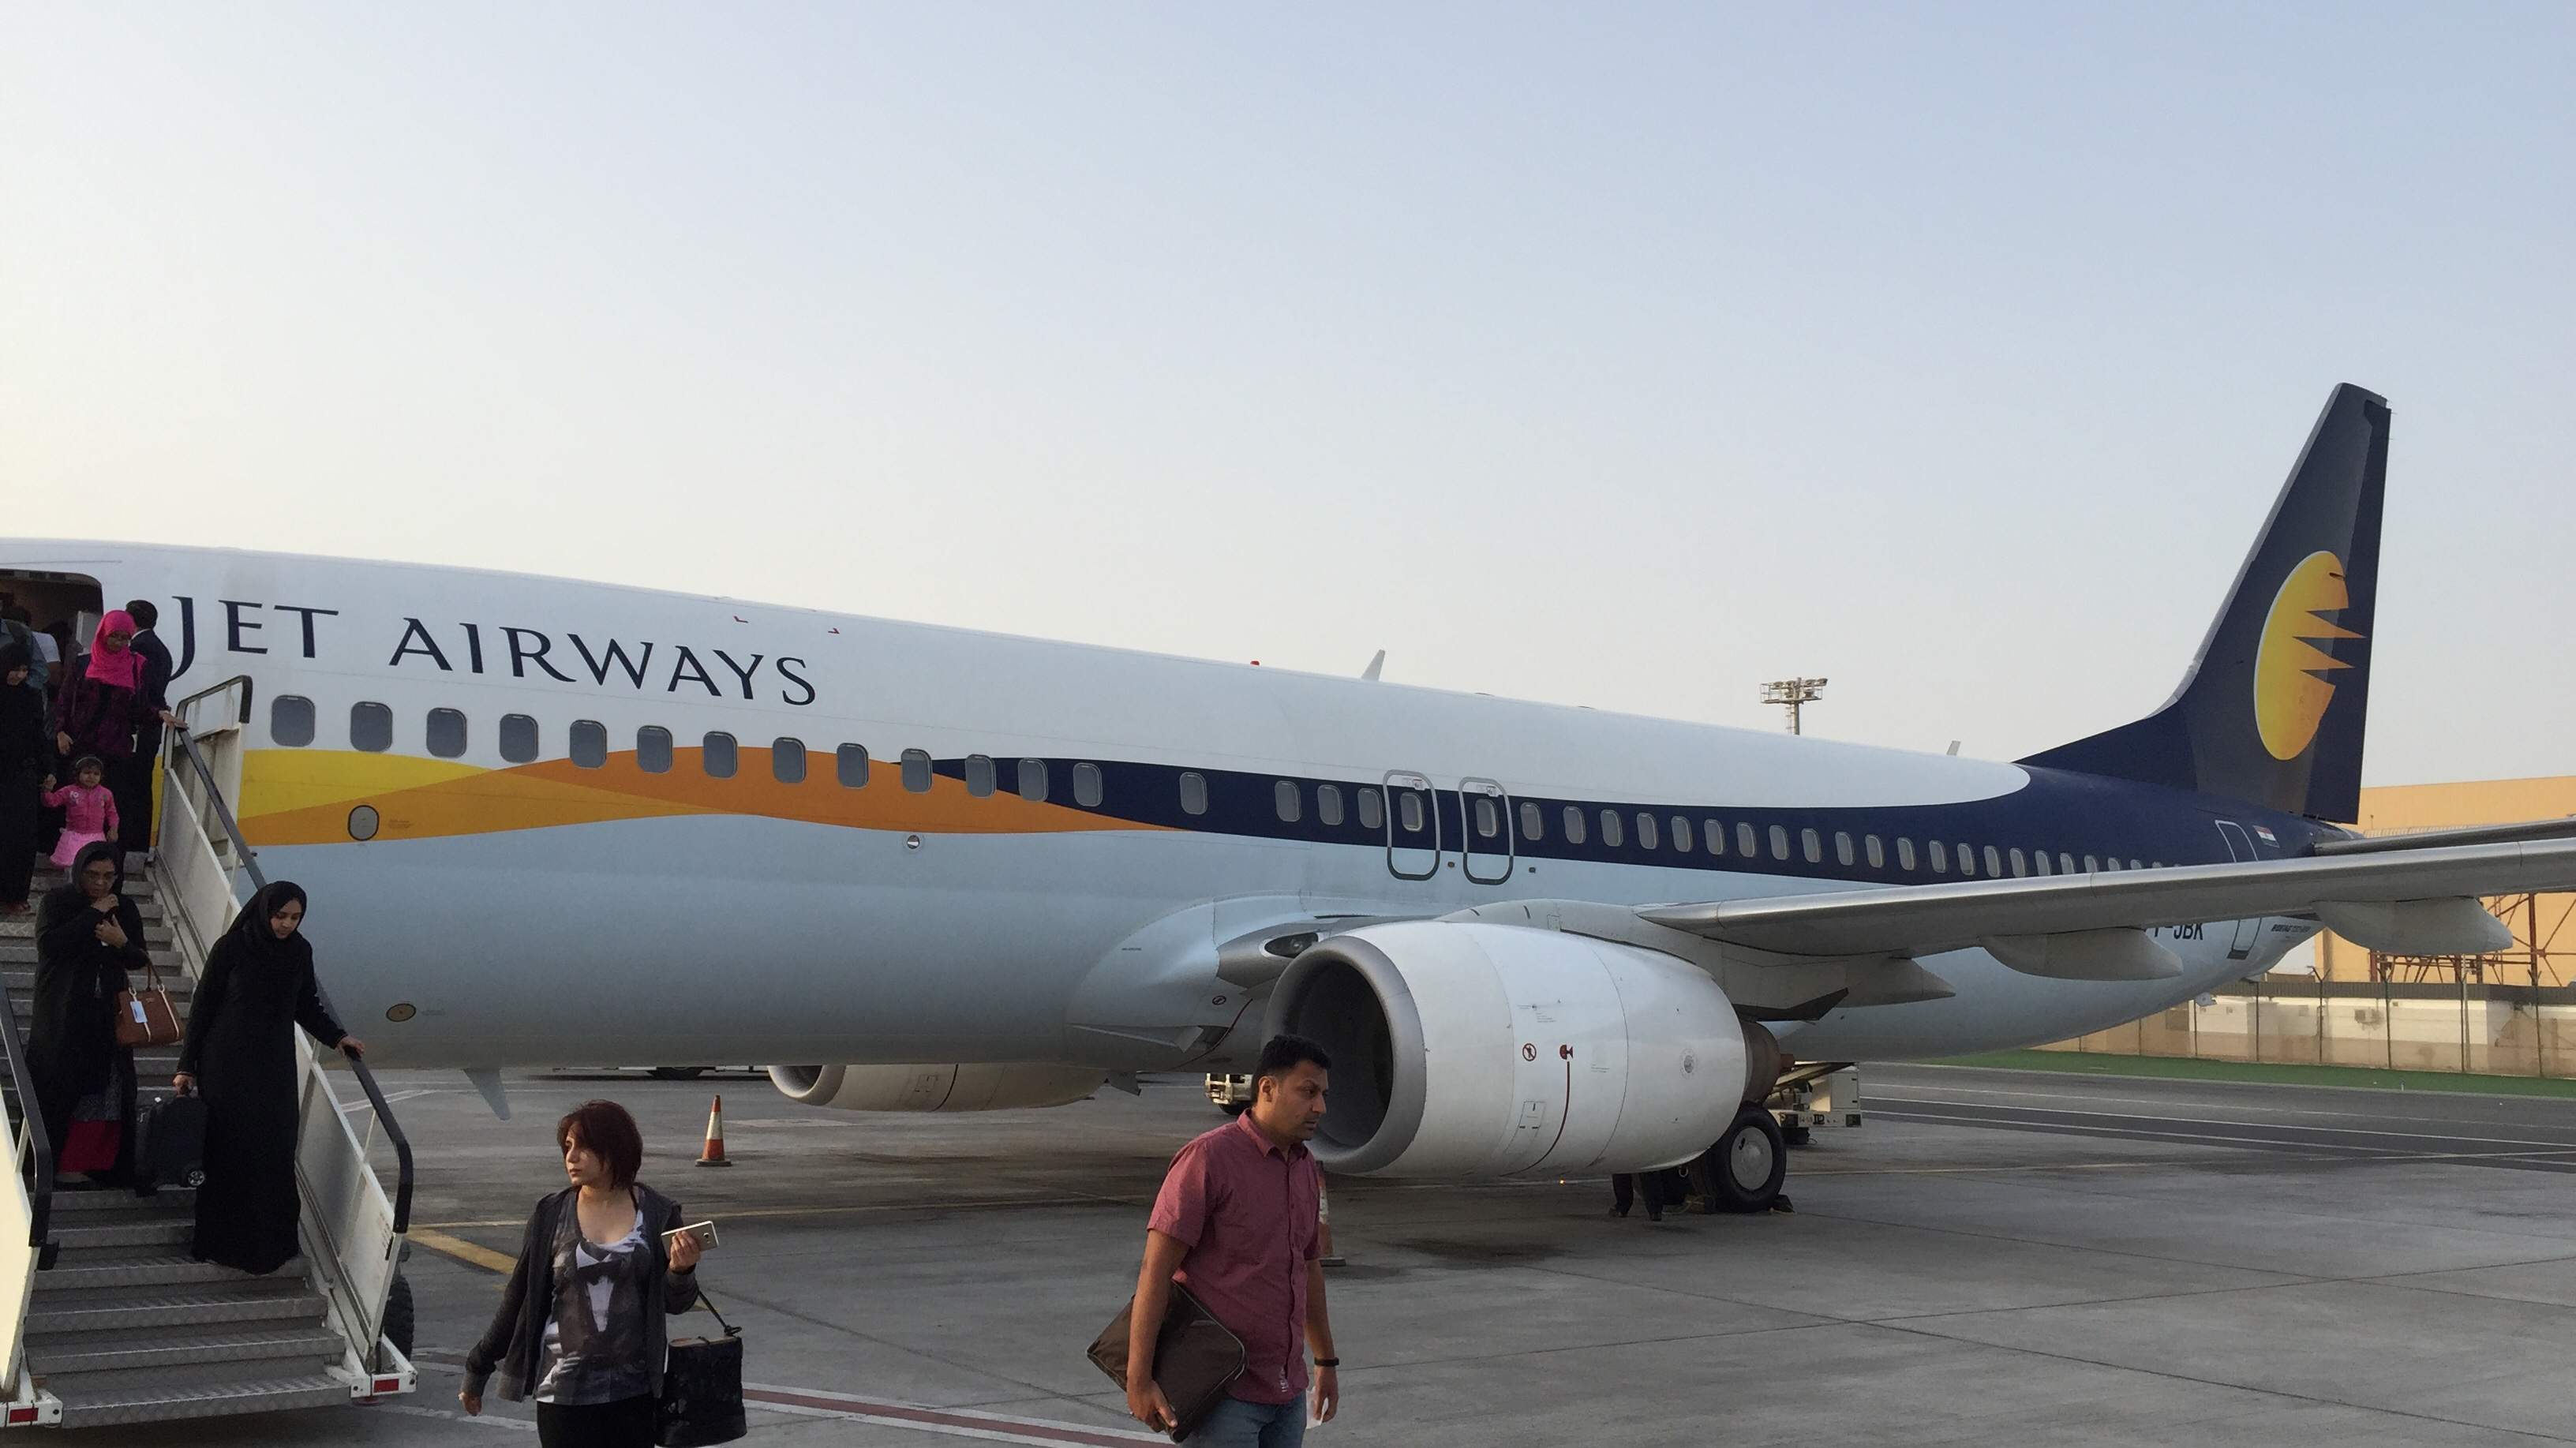 Review: Jet Airways Economy 737-800W Pune to Abu Dhabi